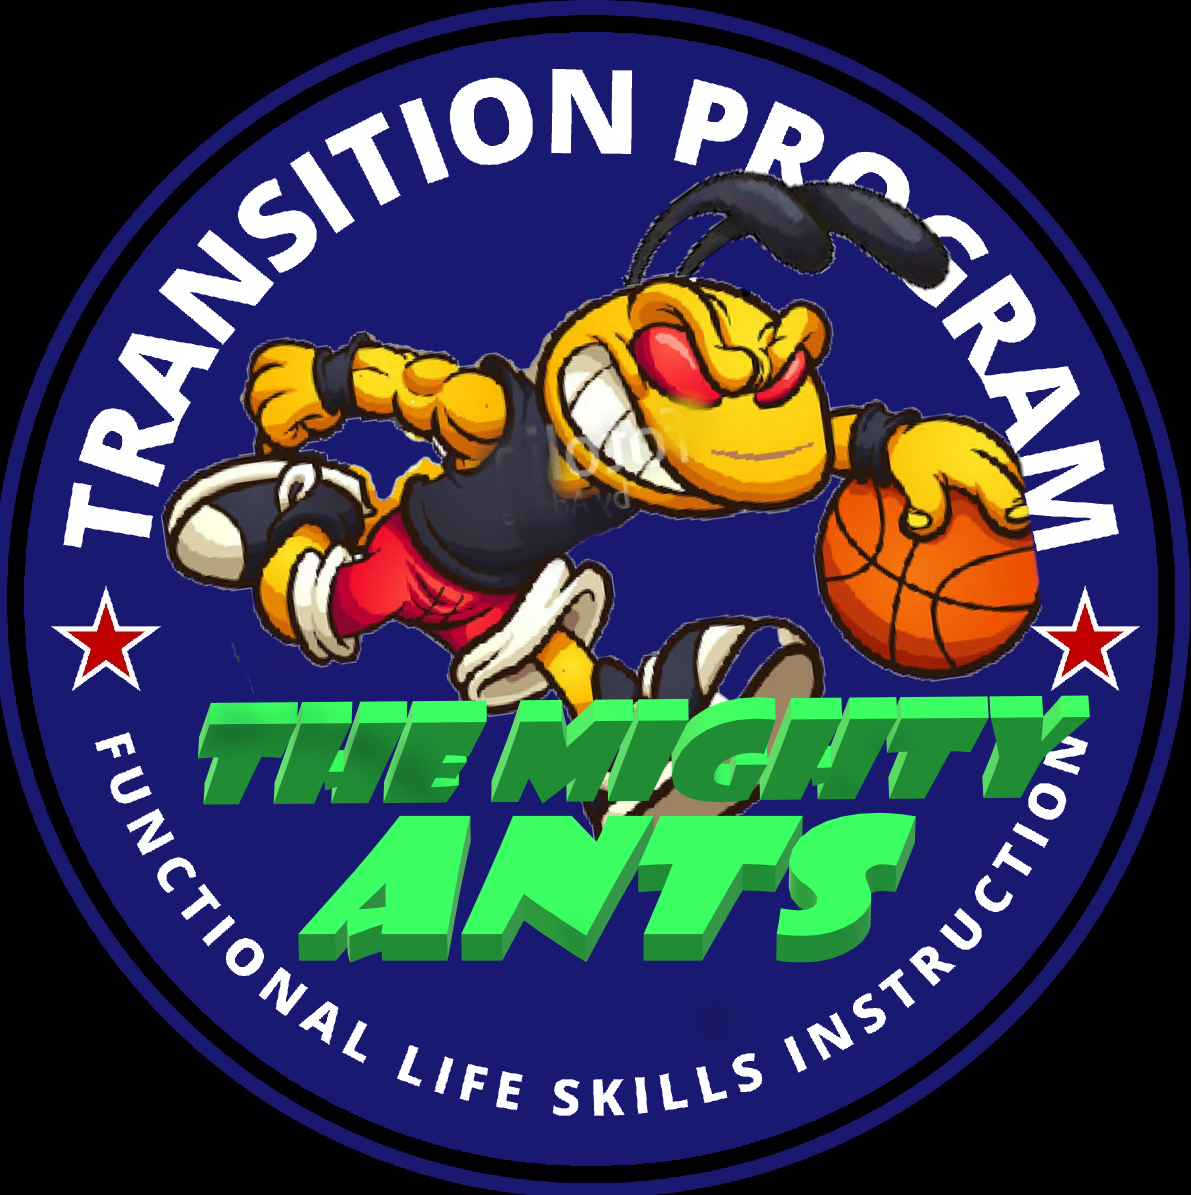 Transition Program on the move...